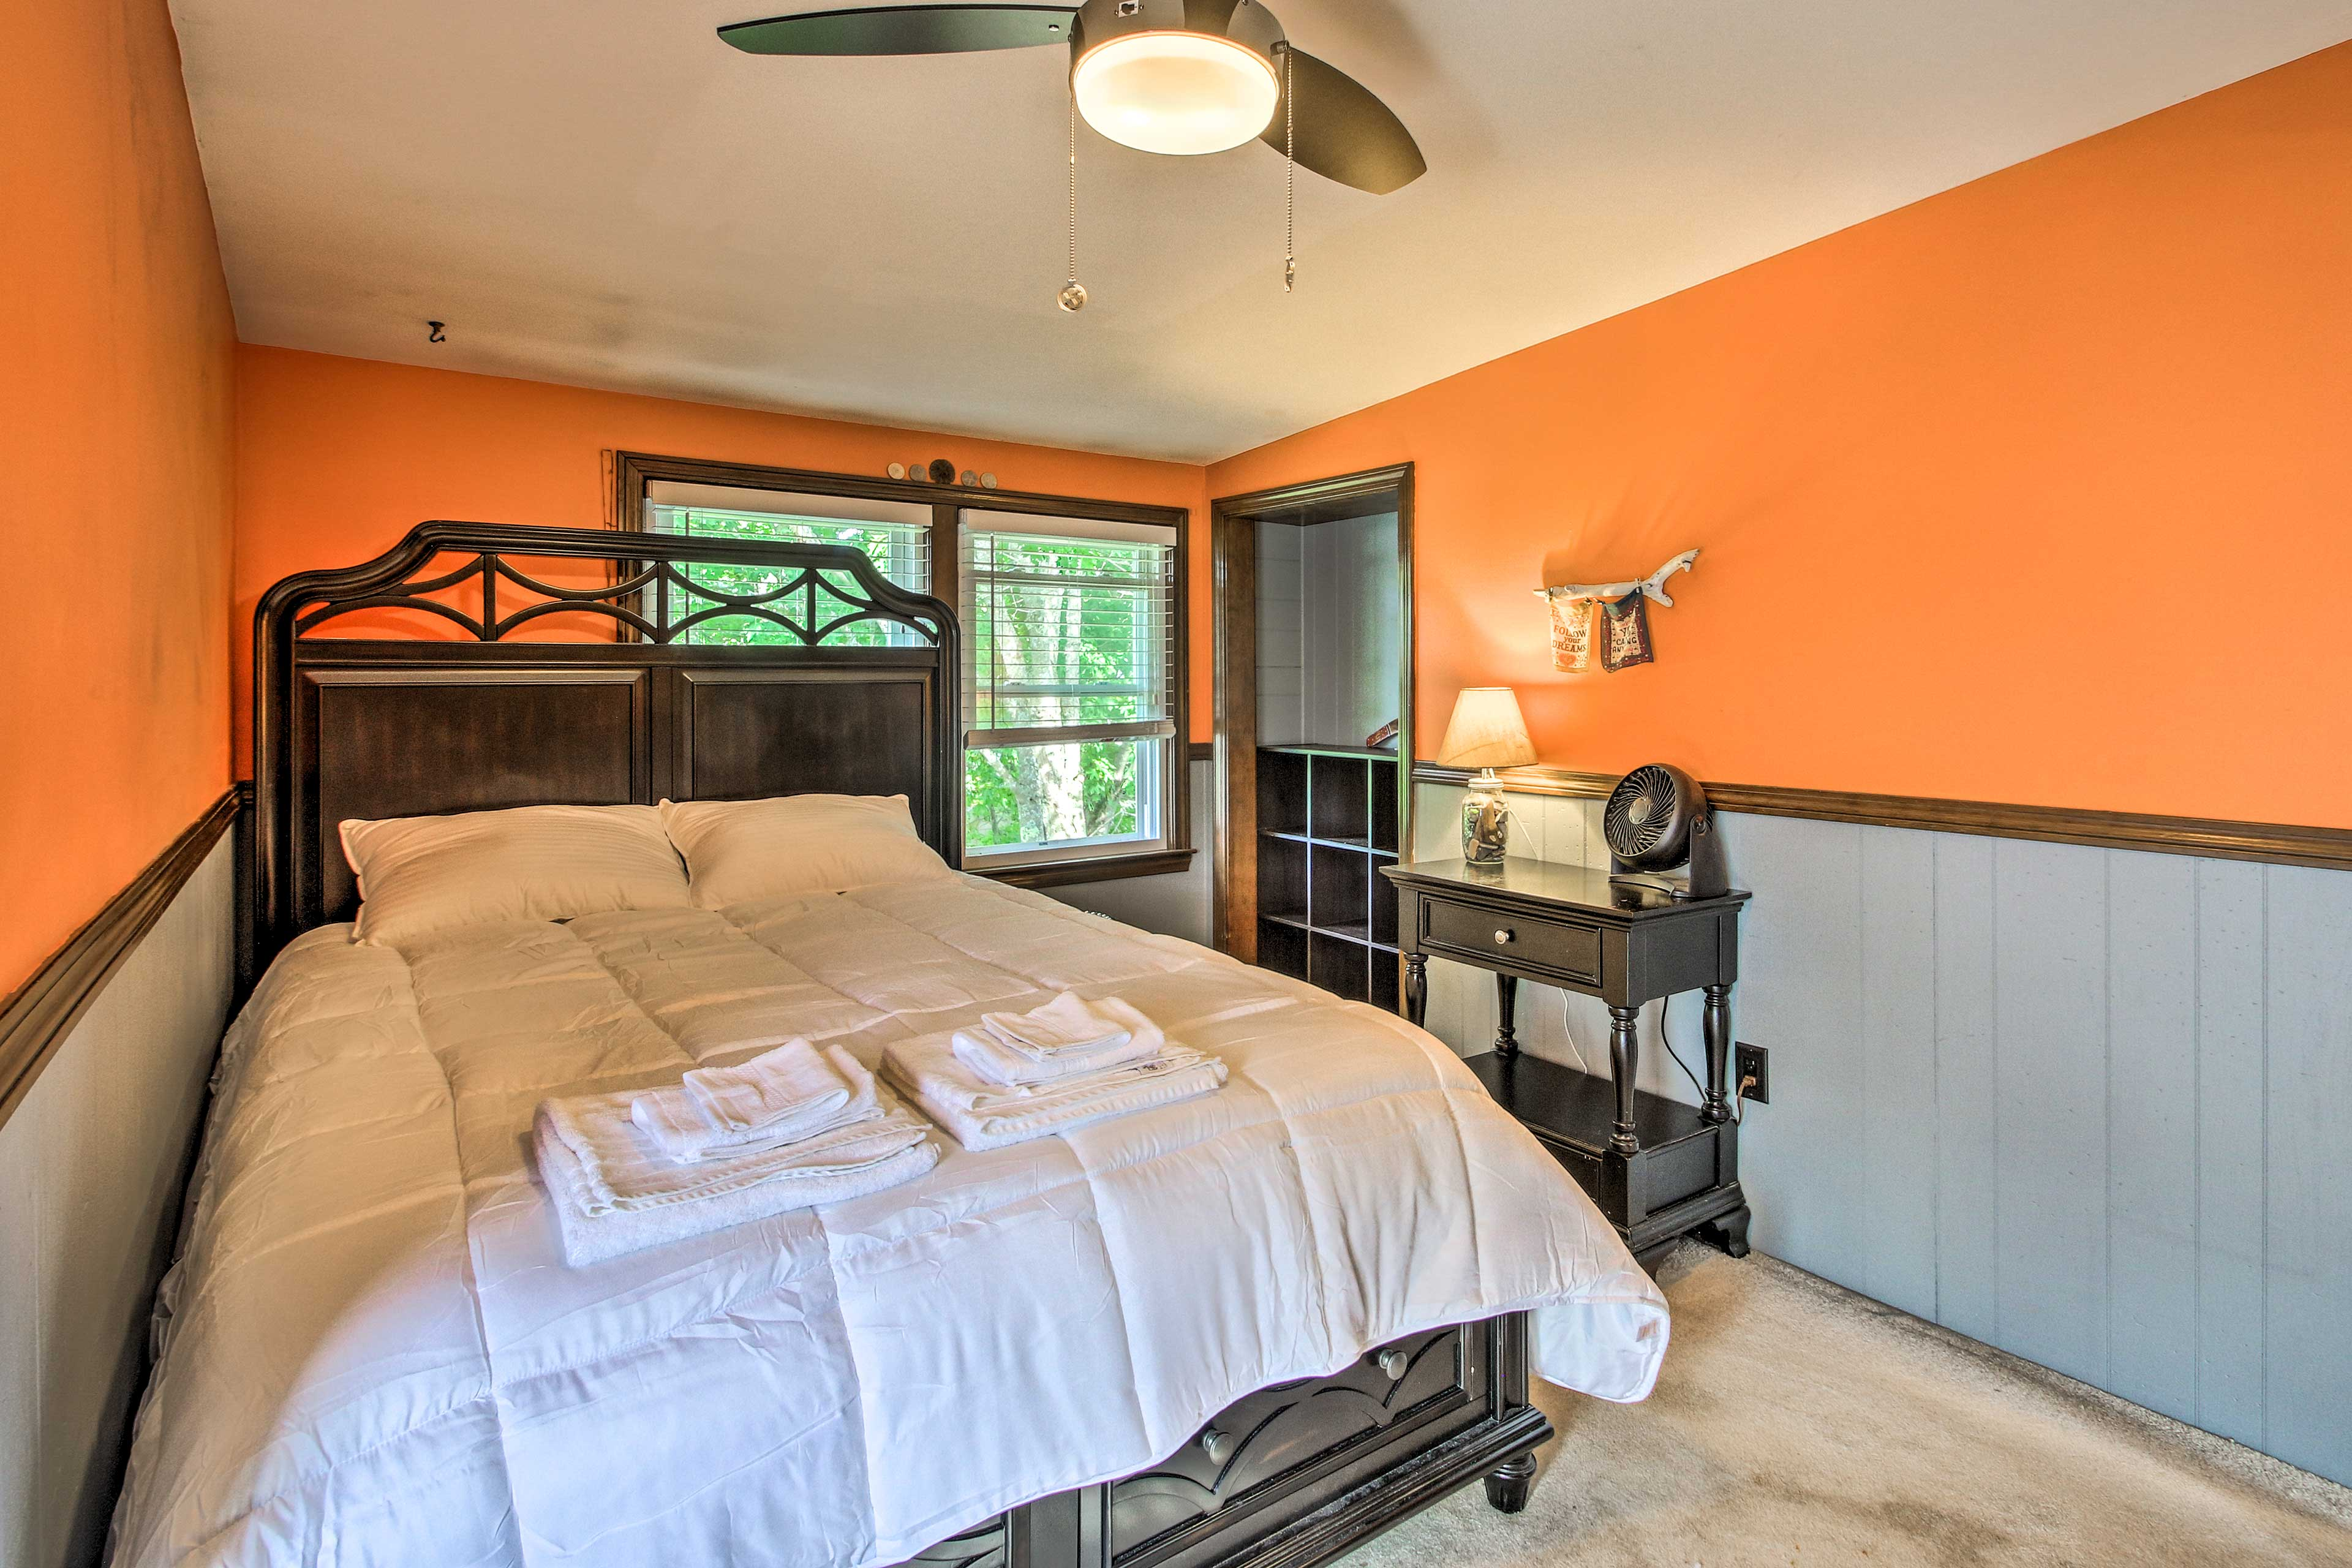 The fifth bedroom also has a cloud-like queen bed for guests to enjoy.